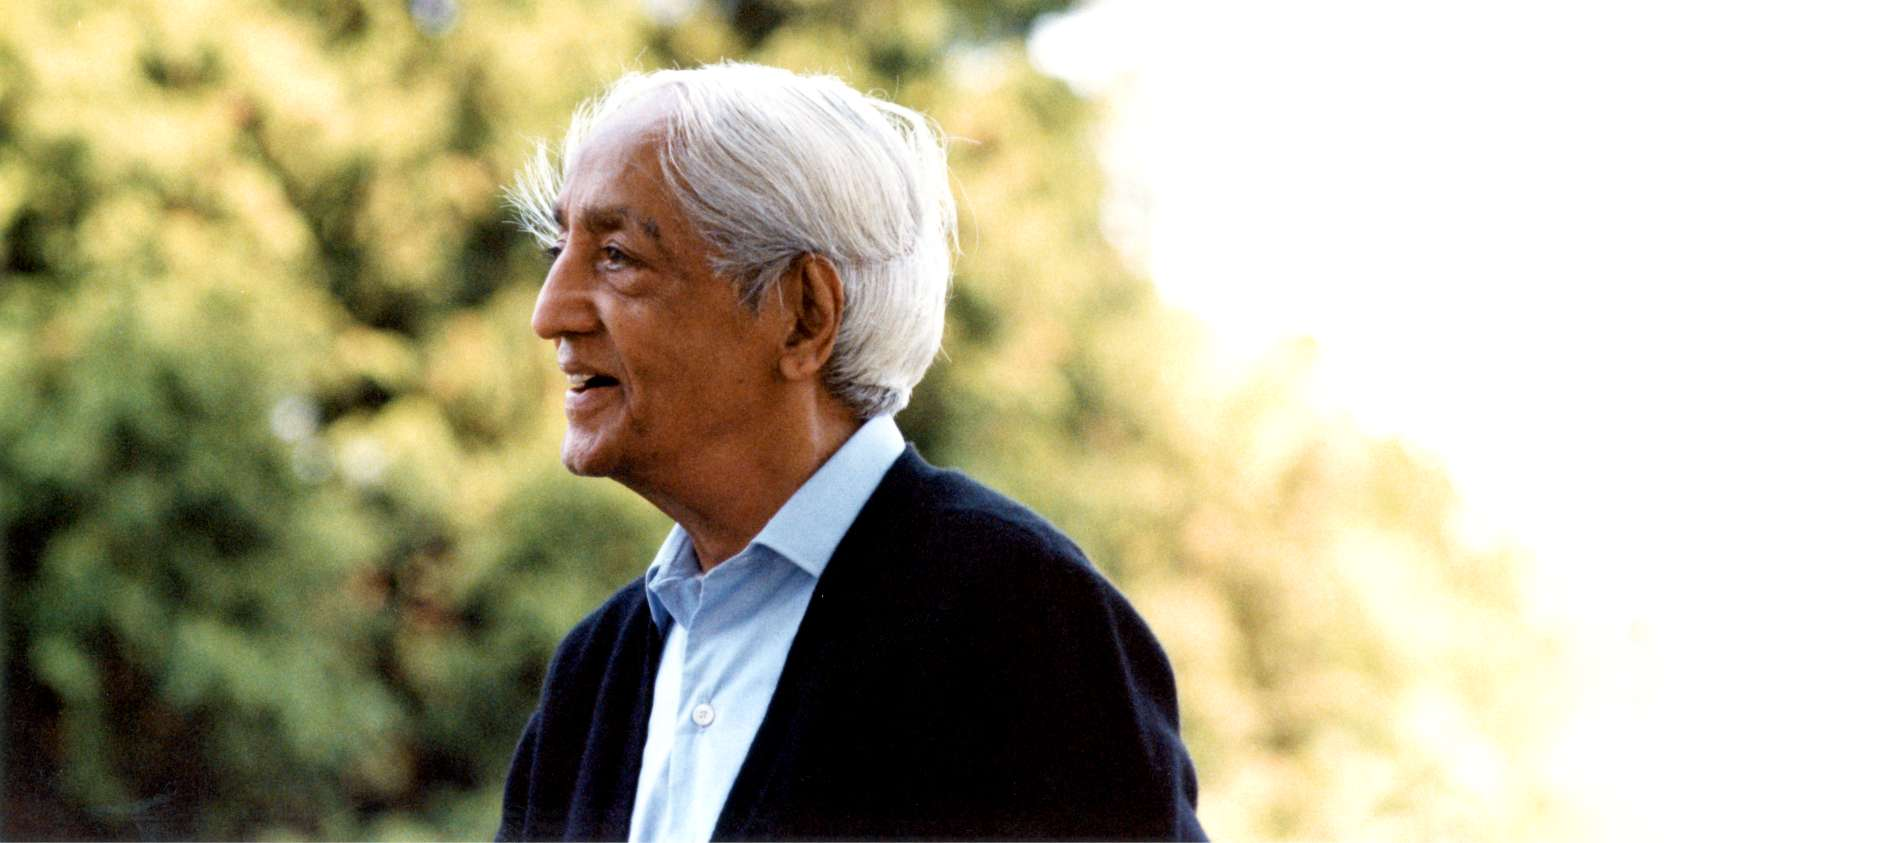 A portrait of J Krishnamurti founder of Brockwood Park School